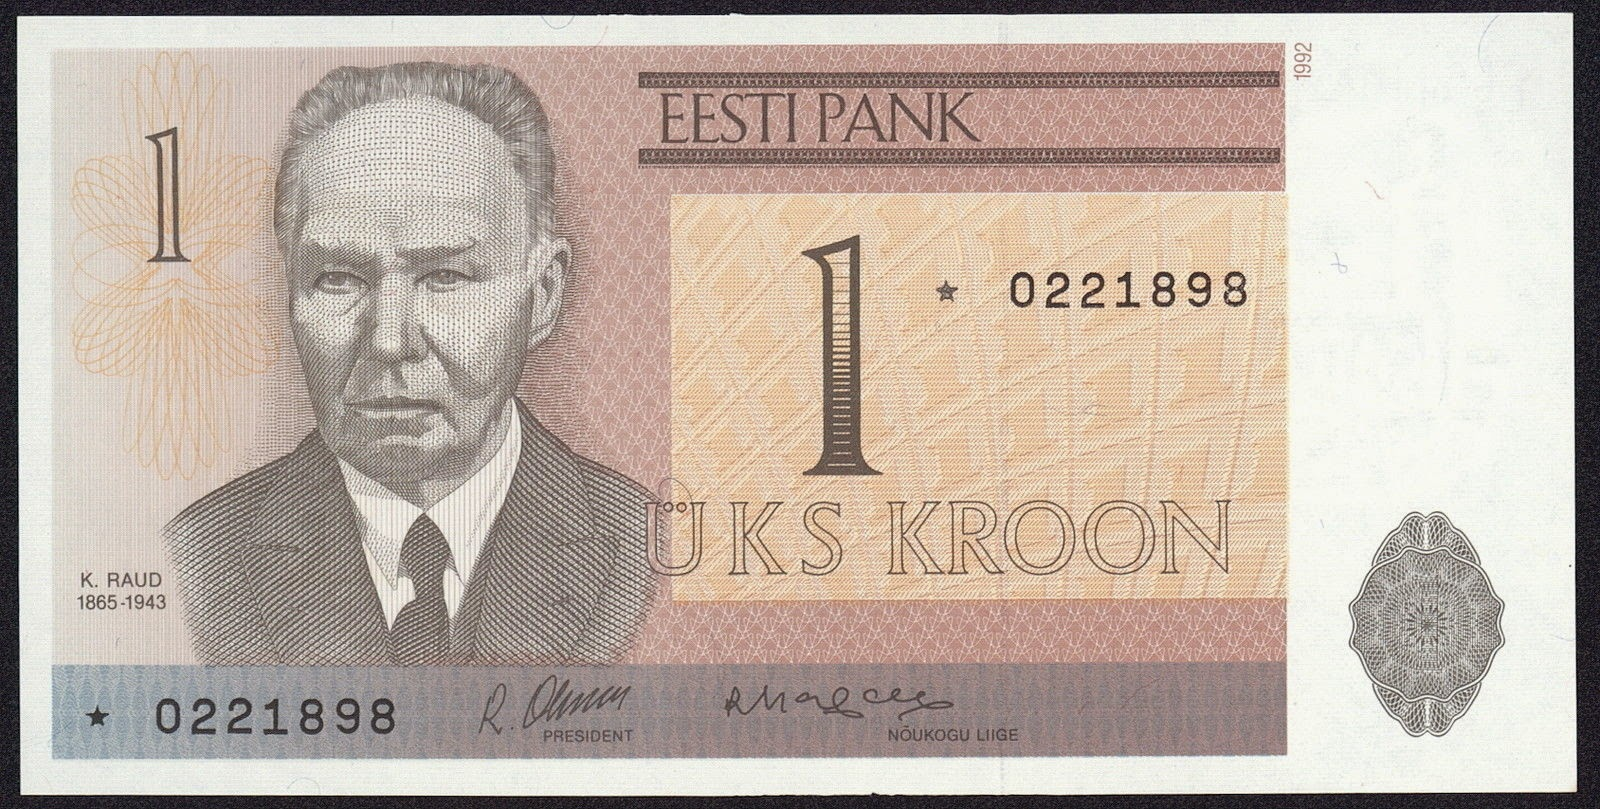 Estonia currency money 1 kroon banknote, Kristjan Raud